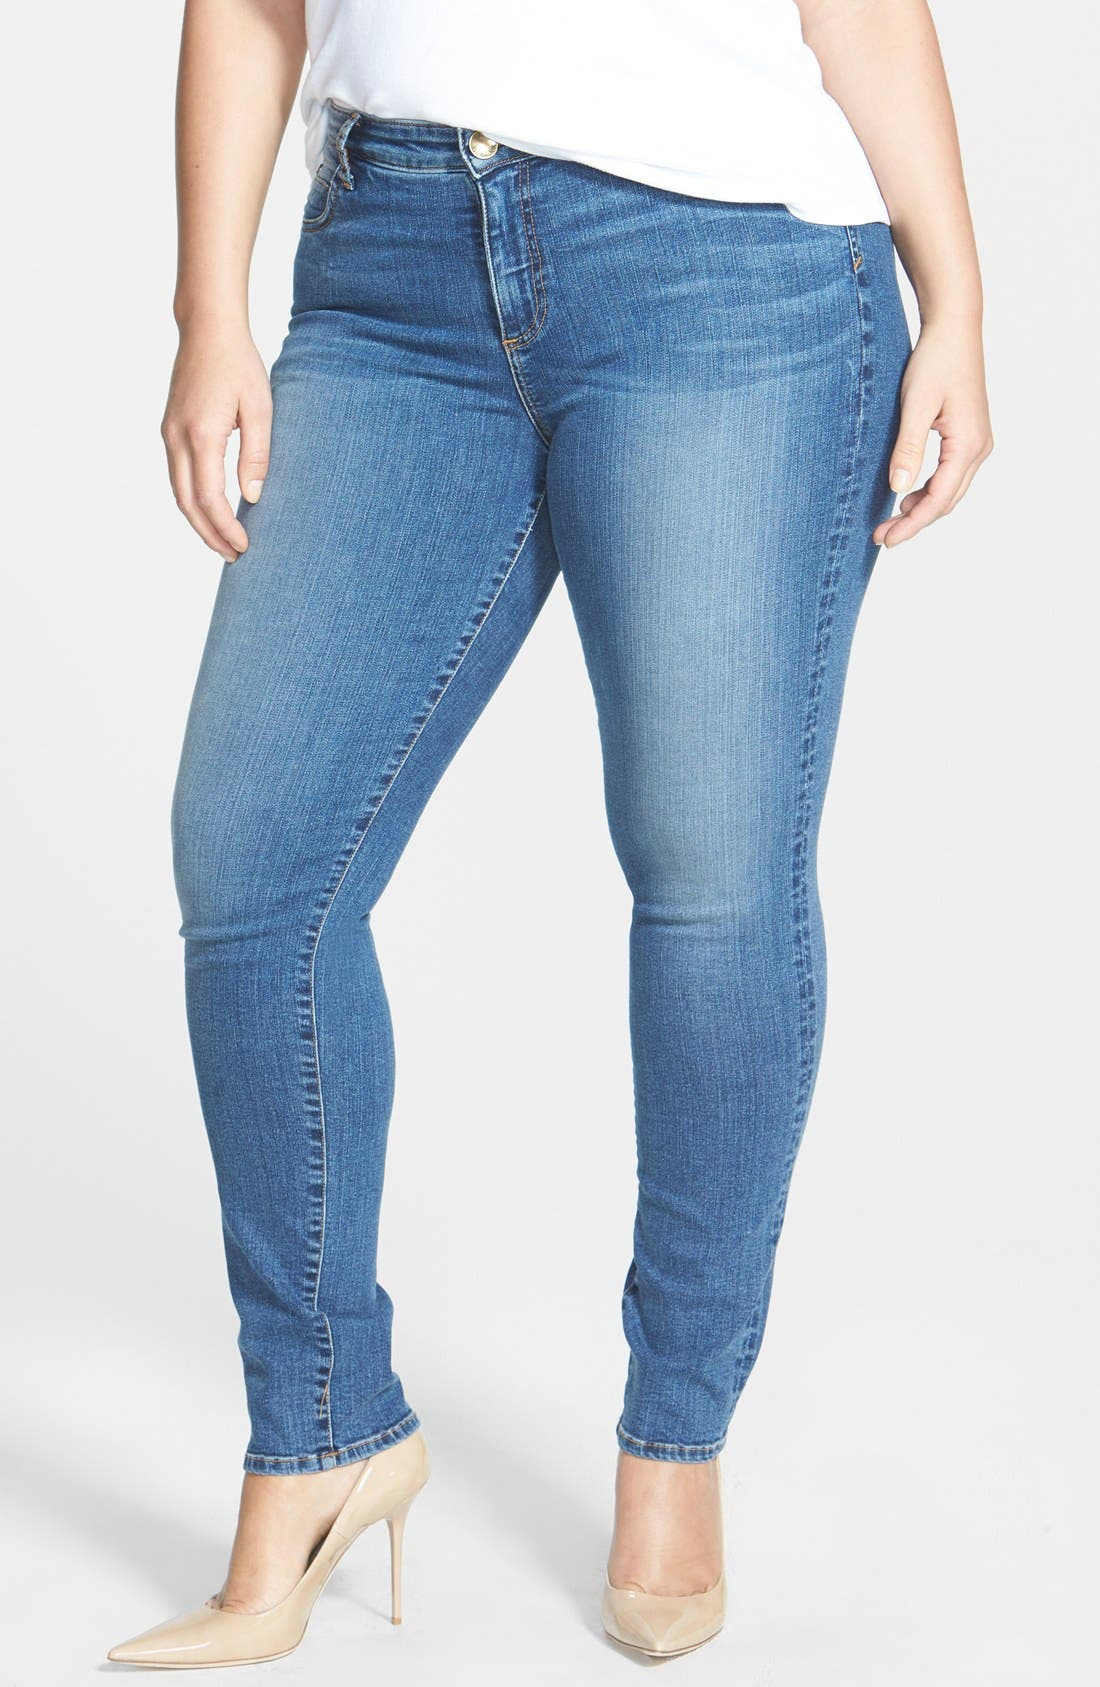 Main Image - KUT from the Kloth 'Diana' Stretch Skinny Jeans (Contingent) (Plus Size)